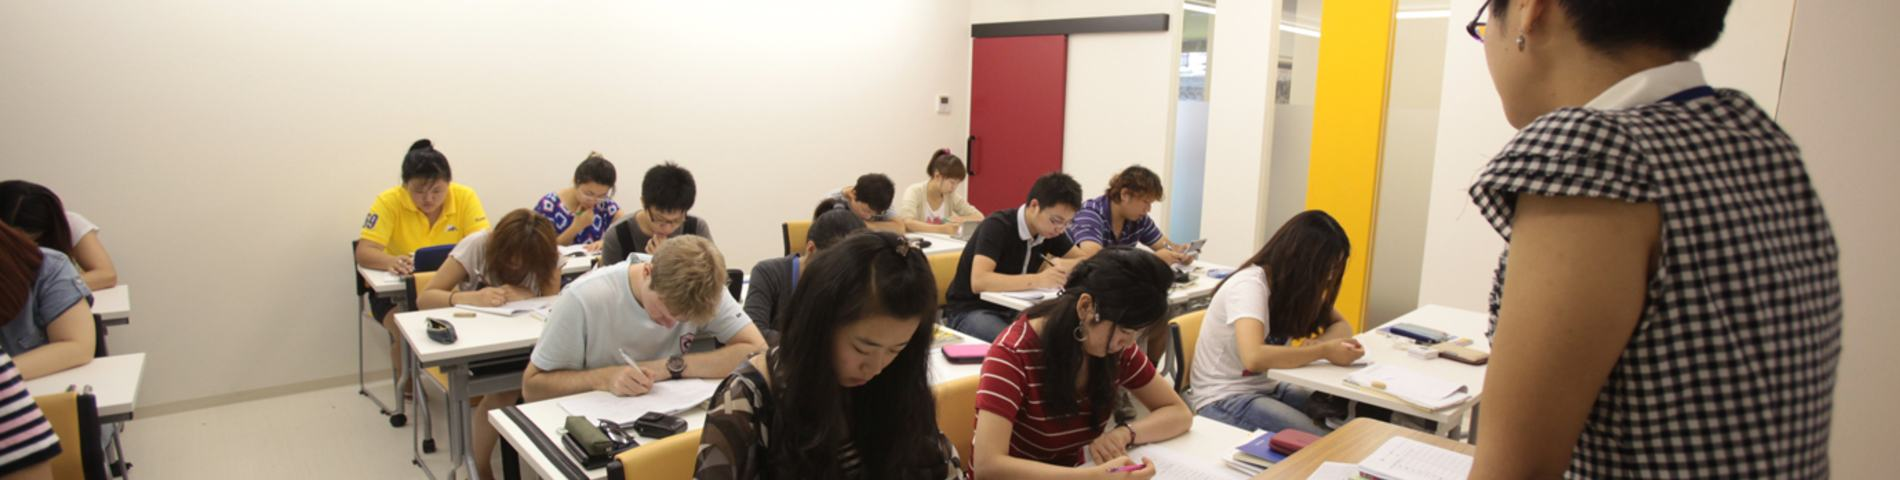 ISI Language School - Takadanobaba Campus picture 1